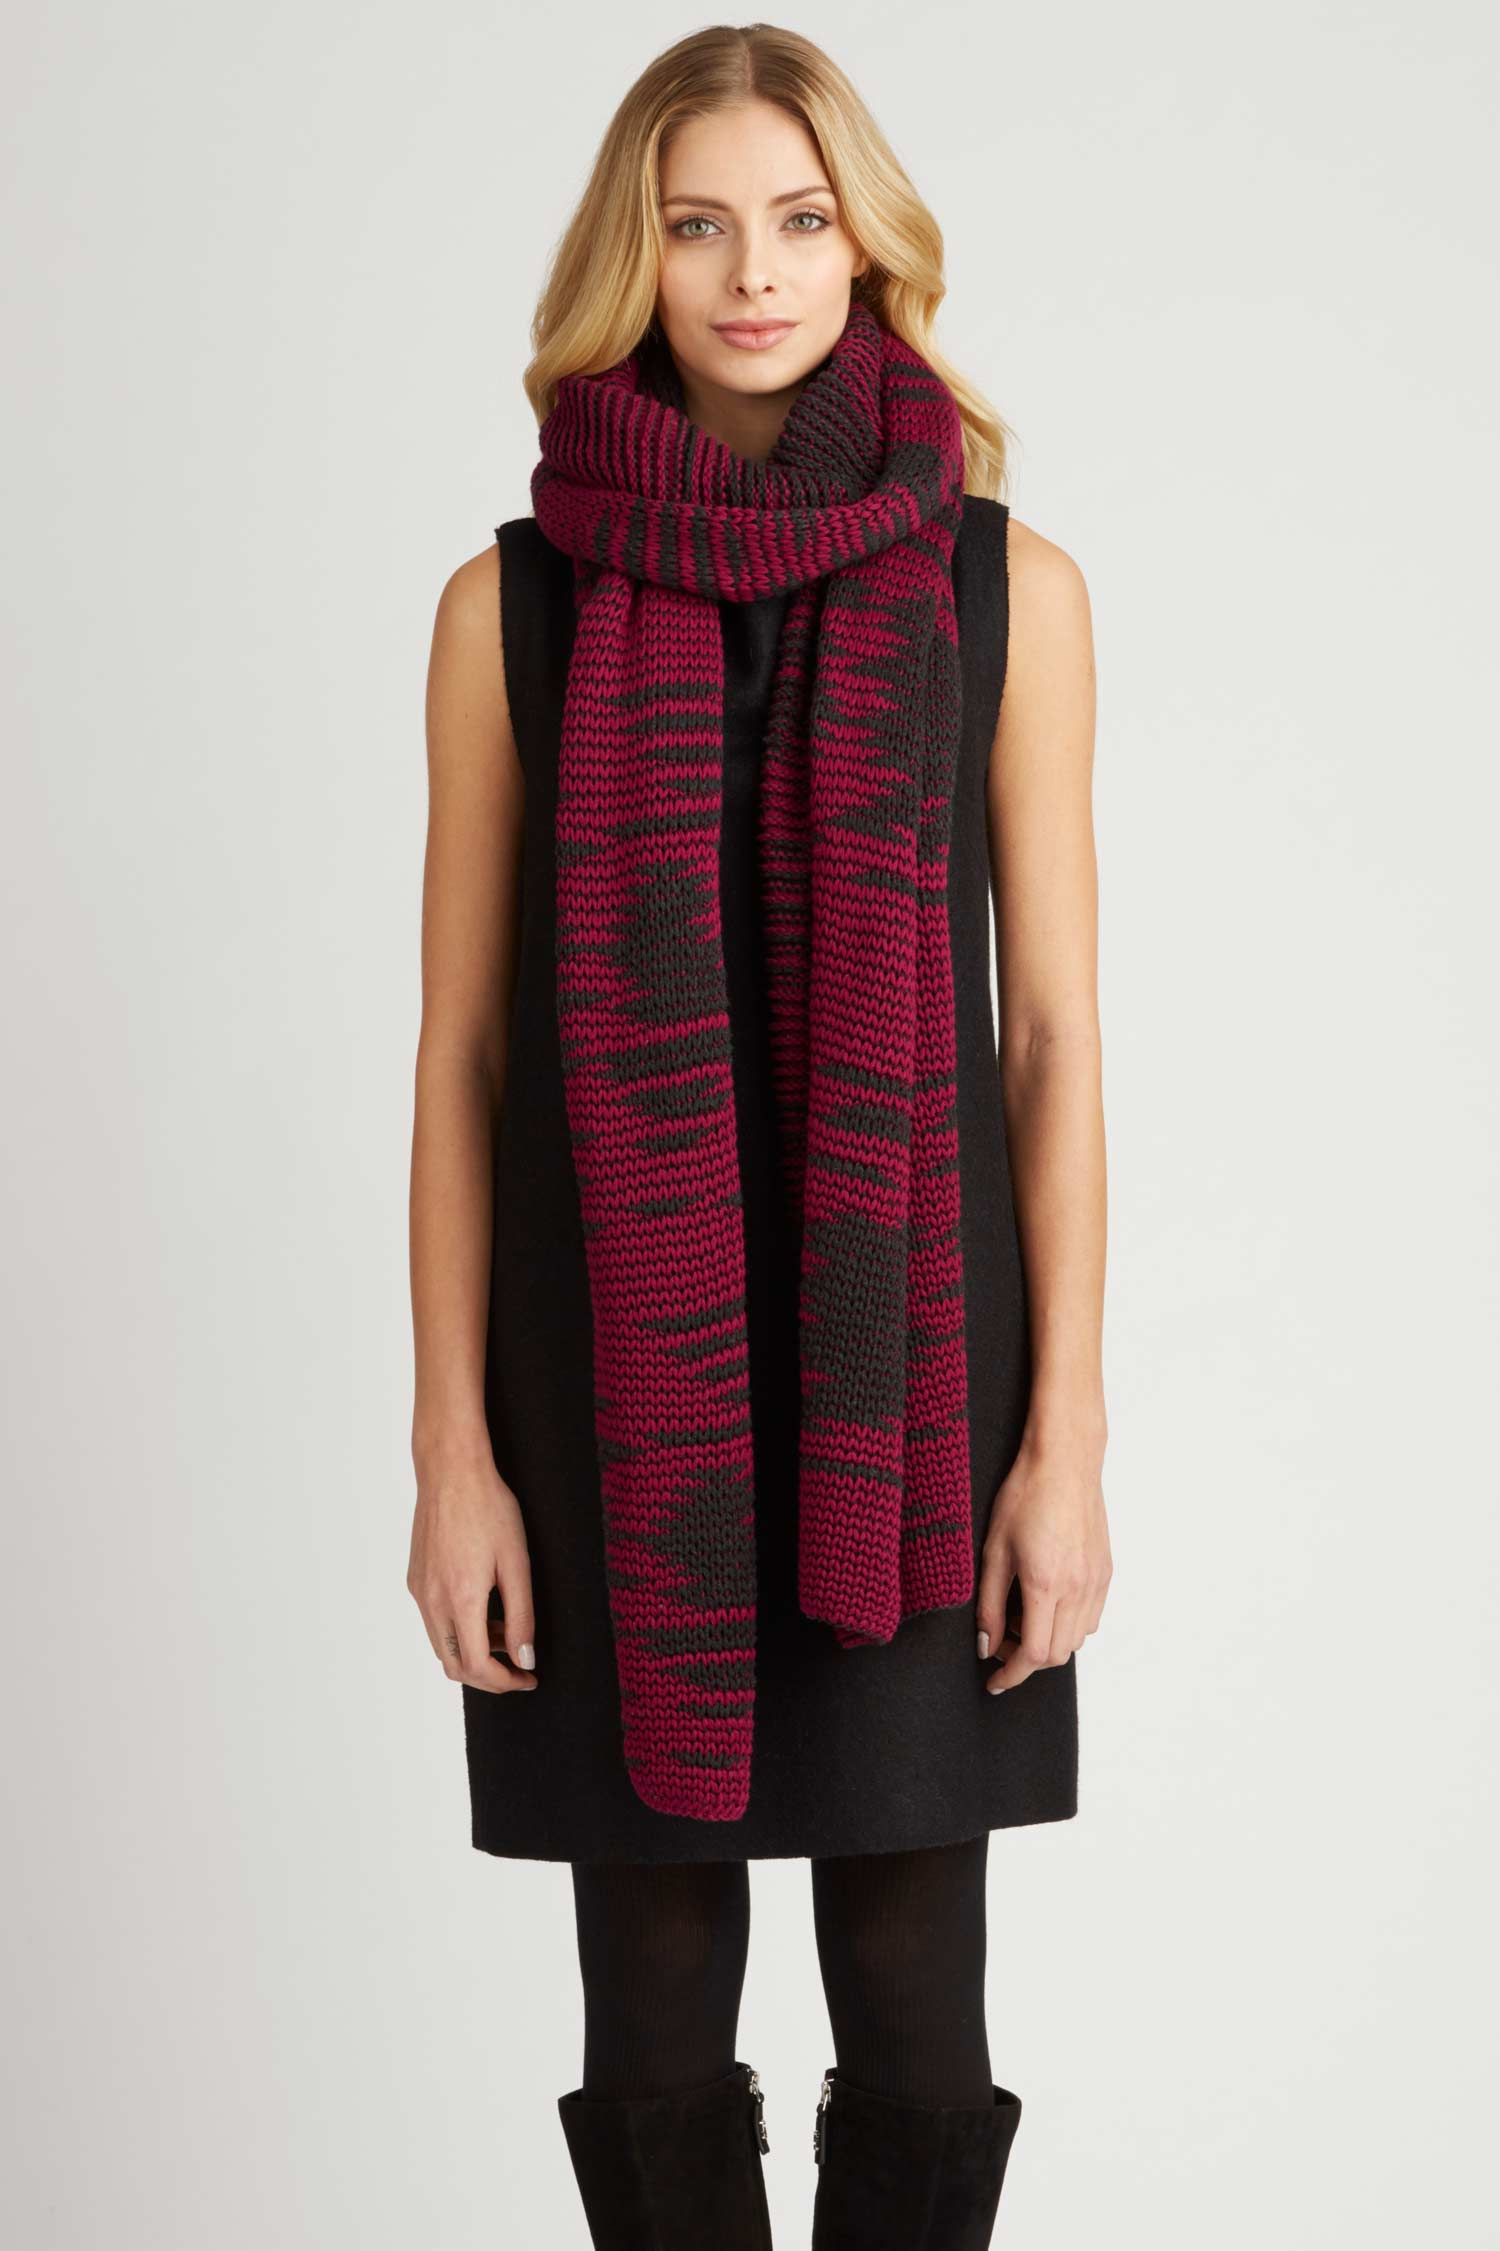 Womens Winter Scarf Wrap - Handcrafted Knit in Red and Black